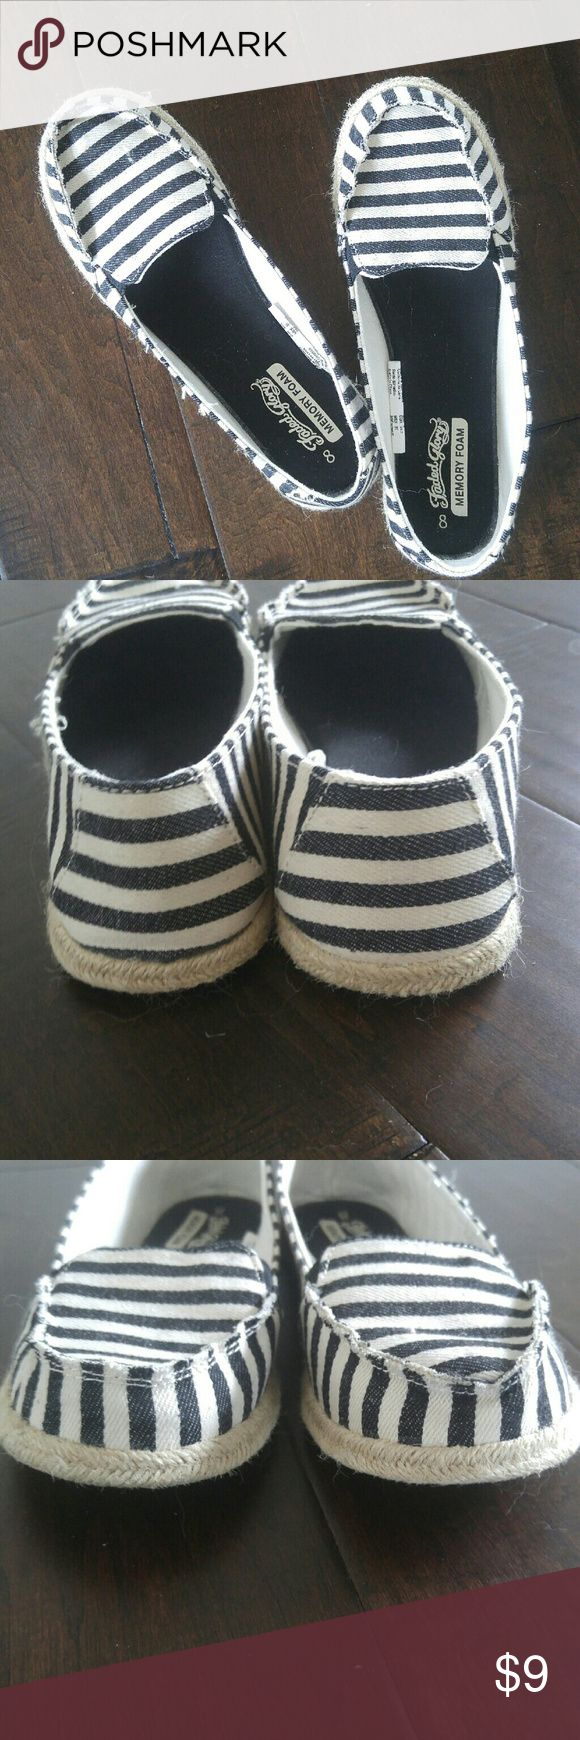 Striped Blue and White Espadrille Flats Faded Glory. Memory foam cushion. Wore once, but too big on me. Comfy. Like new! Faded Glory Shoes